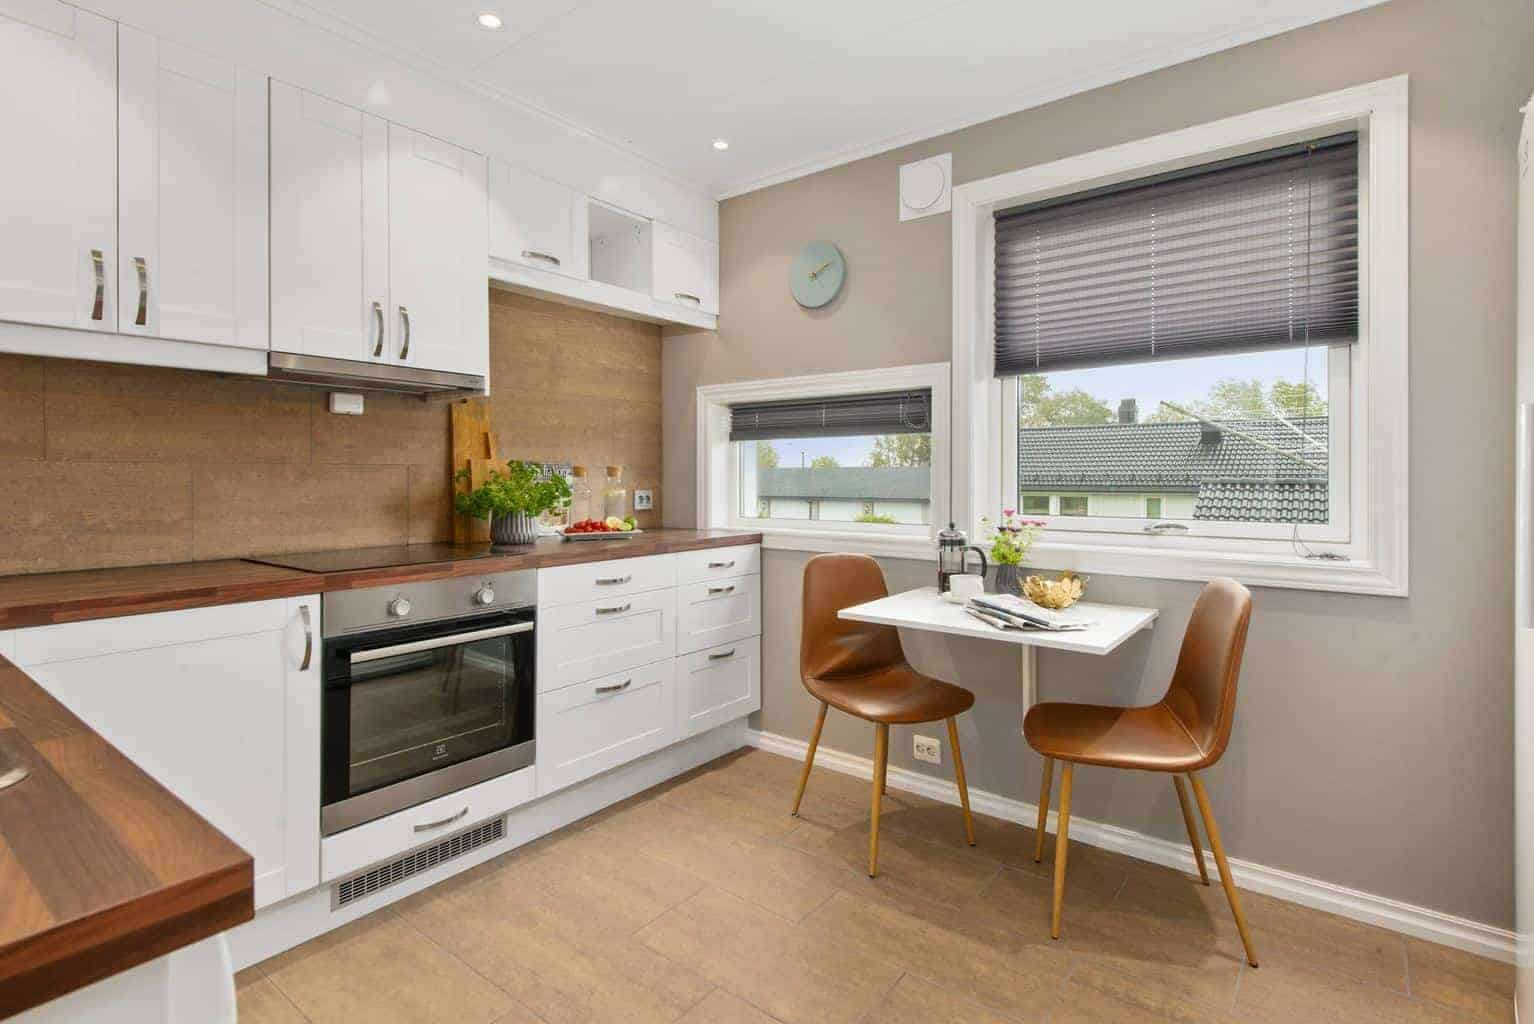 Key Factors To Consider For Your Kitchen Remodel